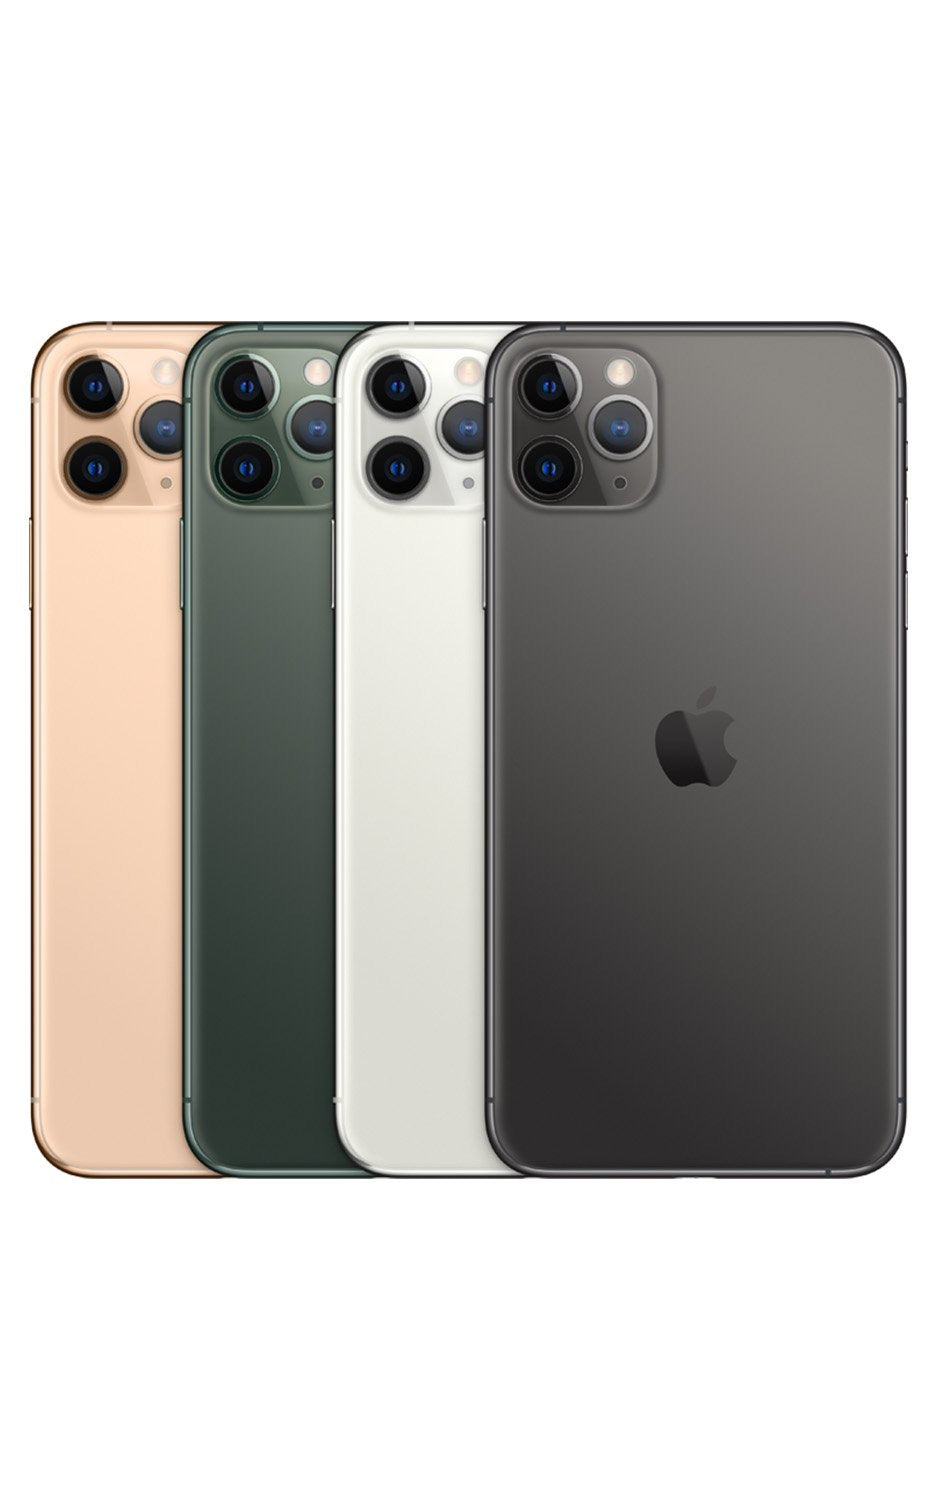 iPhone 11 Pro - Unlocked (Available only via Direct Invoice or Cash App/Venmo)